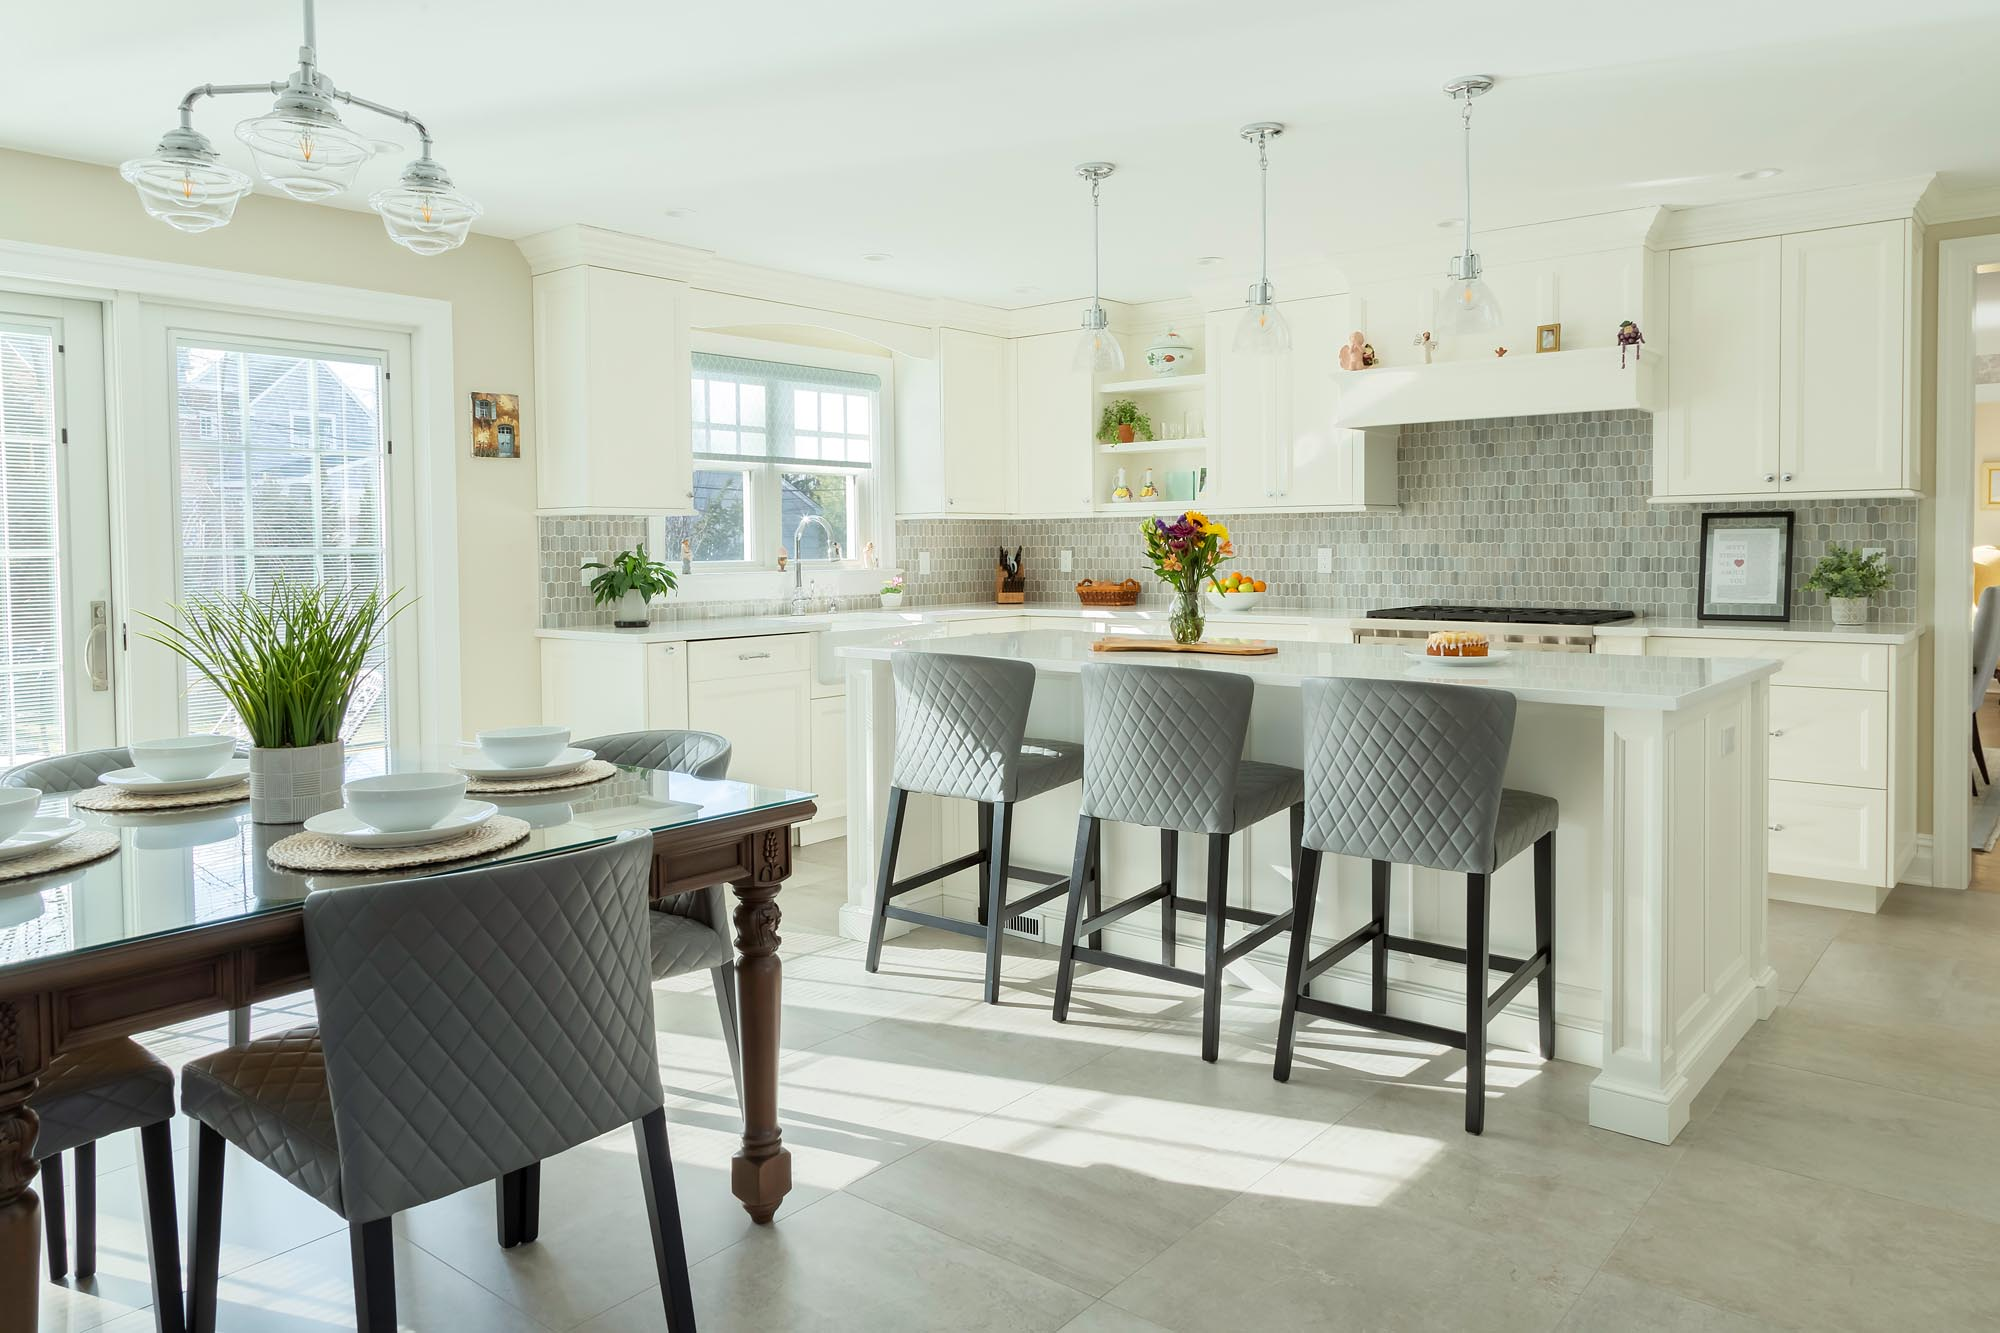 Transitional white kitchen with shaker cabinetry